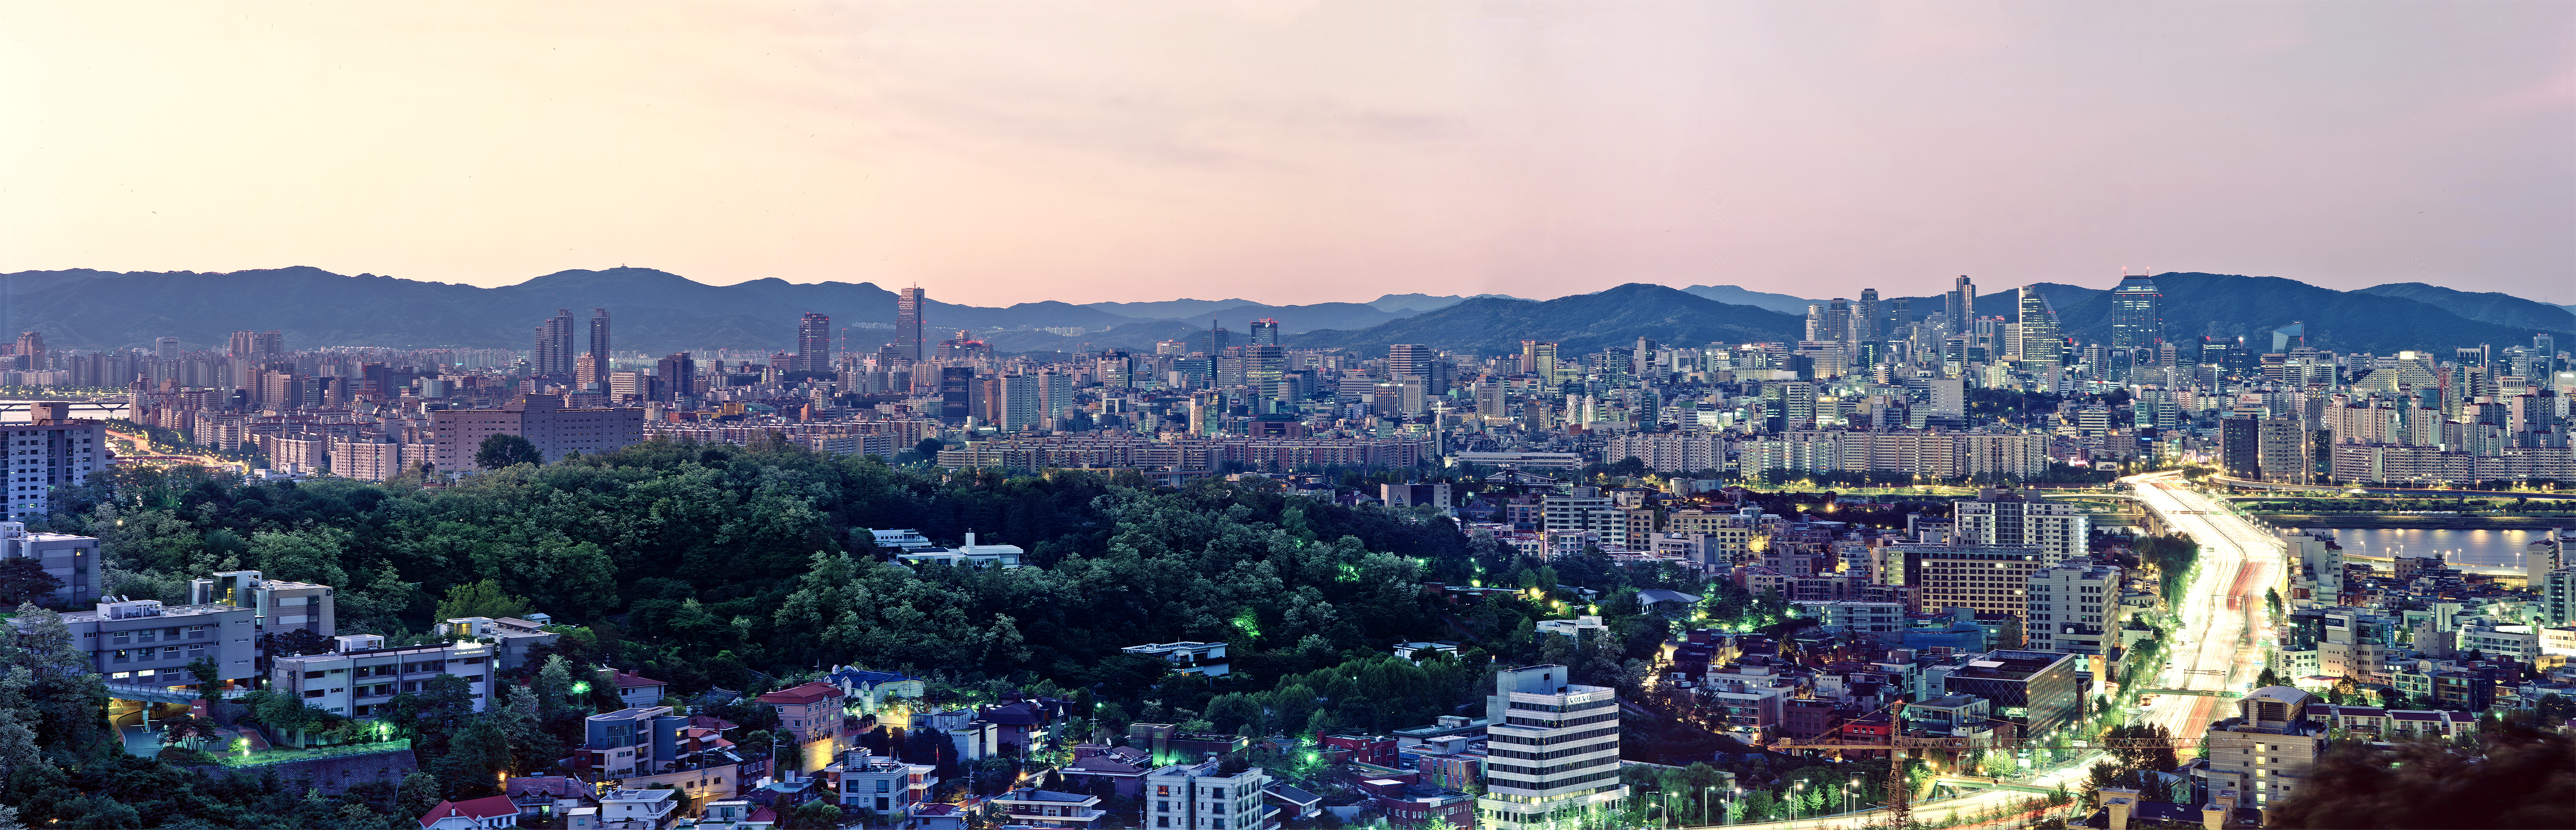 Wallpaper Korea 3d Seoul Wallpapers Pictures Images